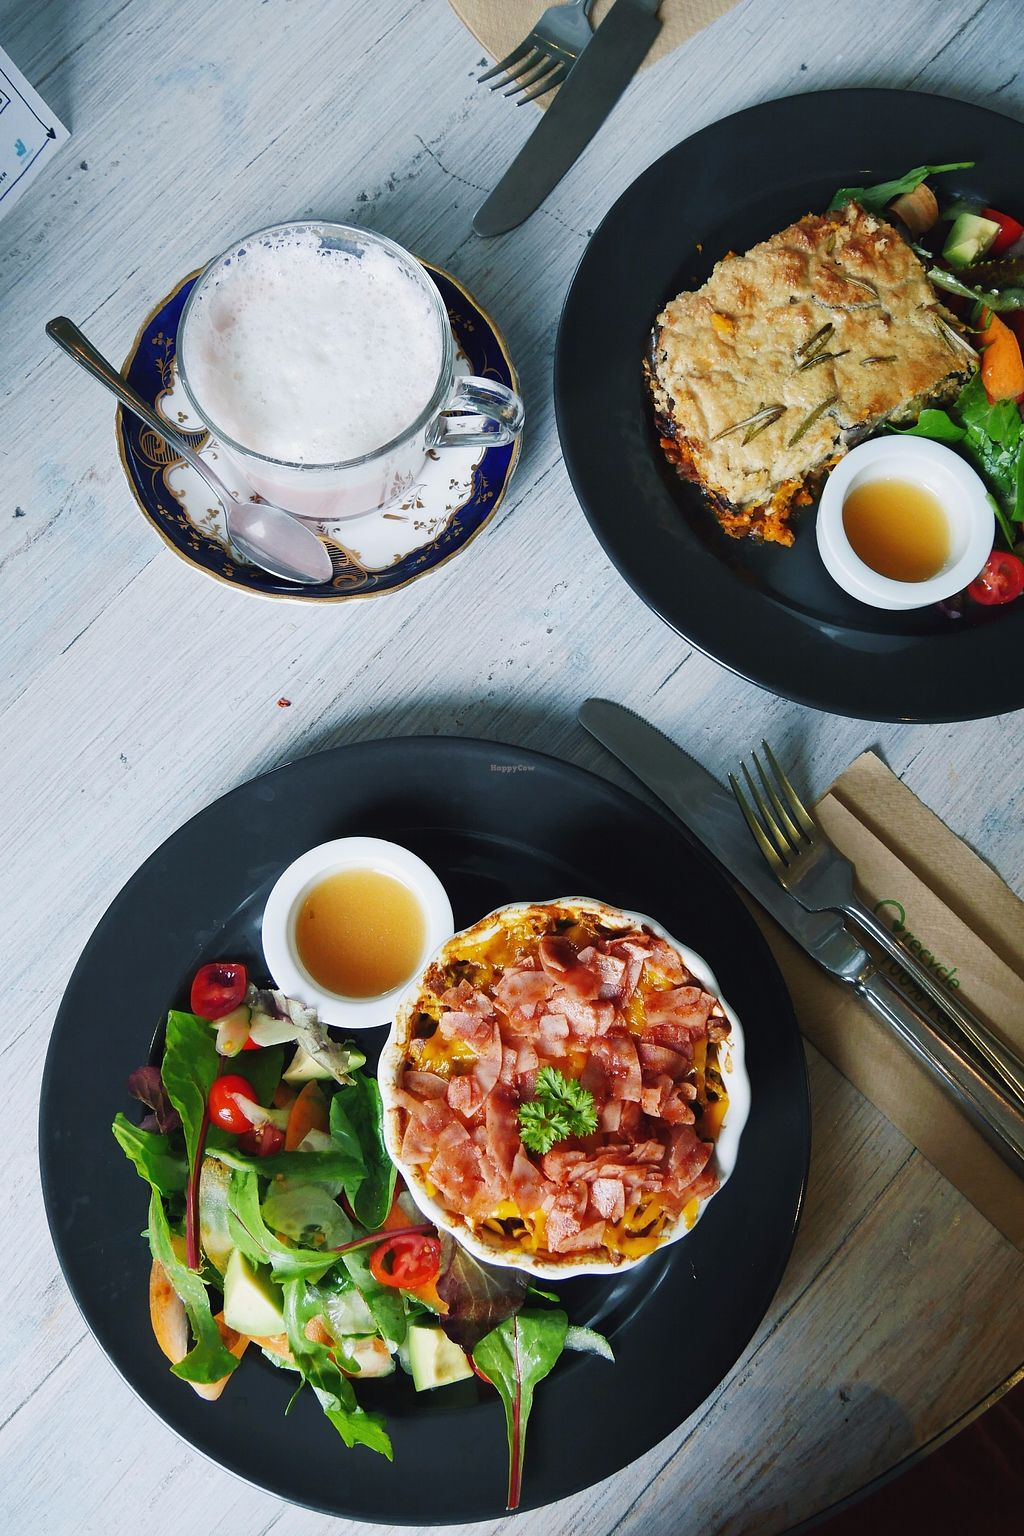 """Photo of Paradise Unbakery  by <a href=""""/members/profile/YukiLim"""">YukiLim</a> <br/>Vegan mac and cheese and moussaka  <br/> September 21, 2017  - <a href='/contact/abuse/image/78199/306664'>Report</a>"""